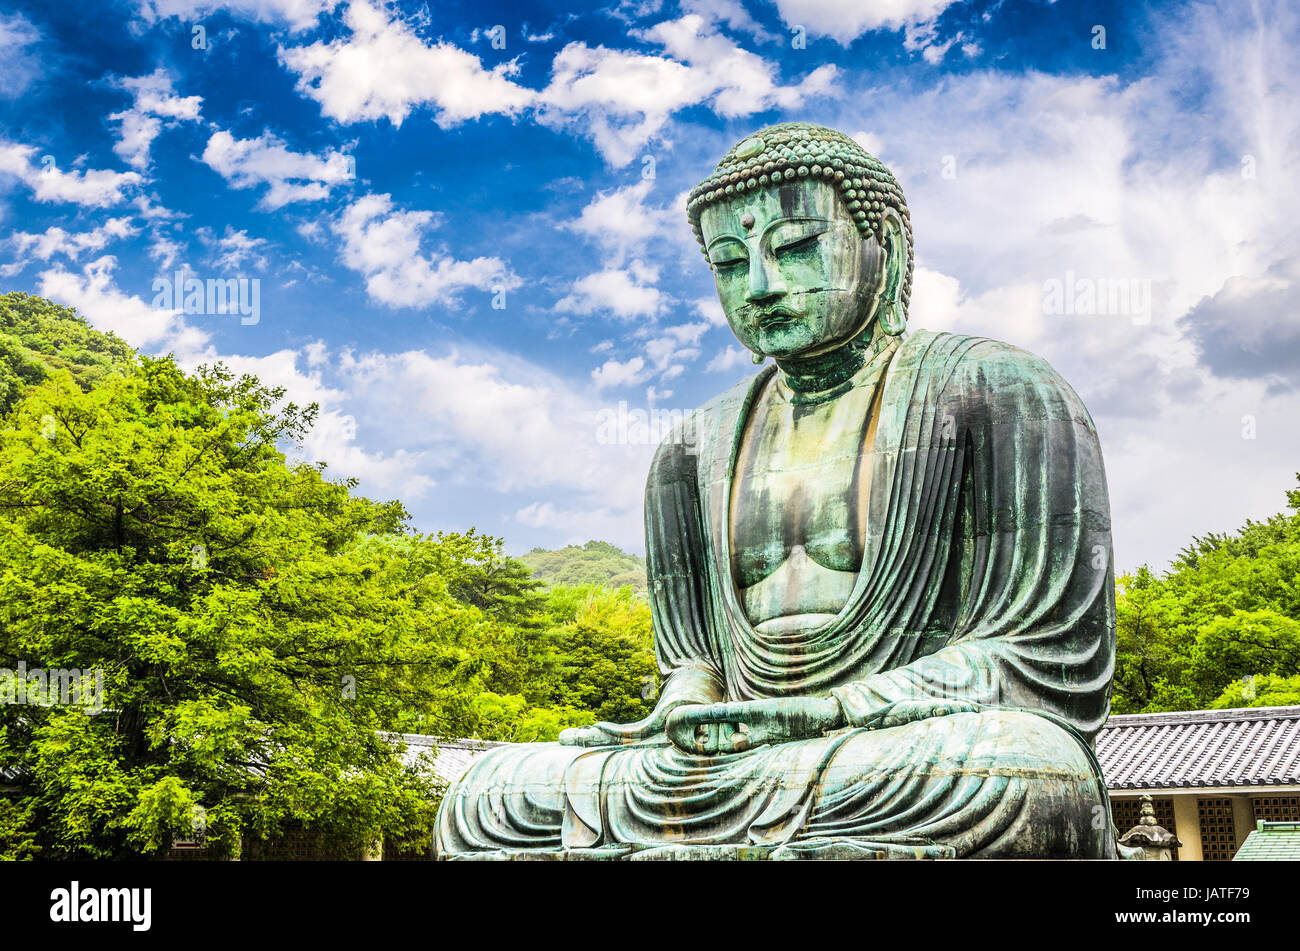 The Great Buddha (Daibutsu) on the grounds of Kotokuin Temple in Kamakura, Japan. - Stock Image